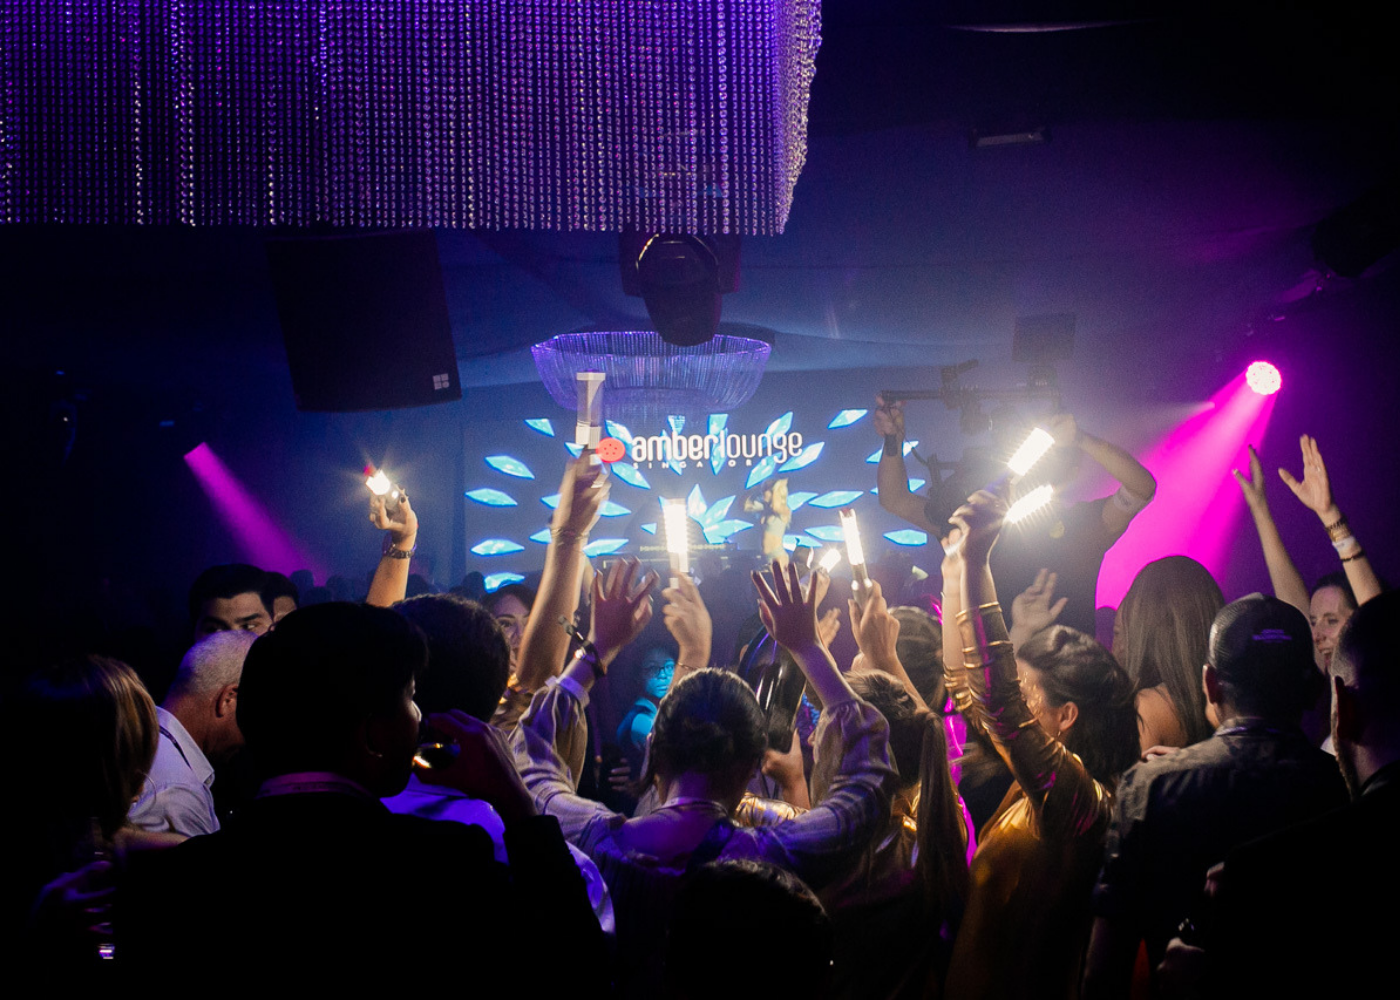 Amber Lounge | Things to do in Singapore in September 2019